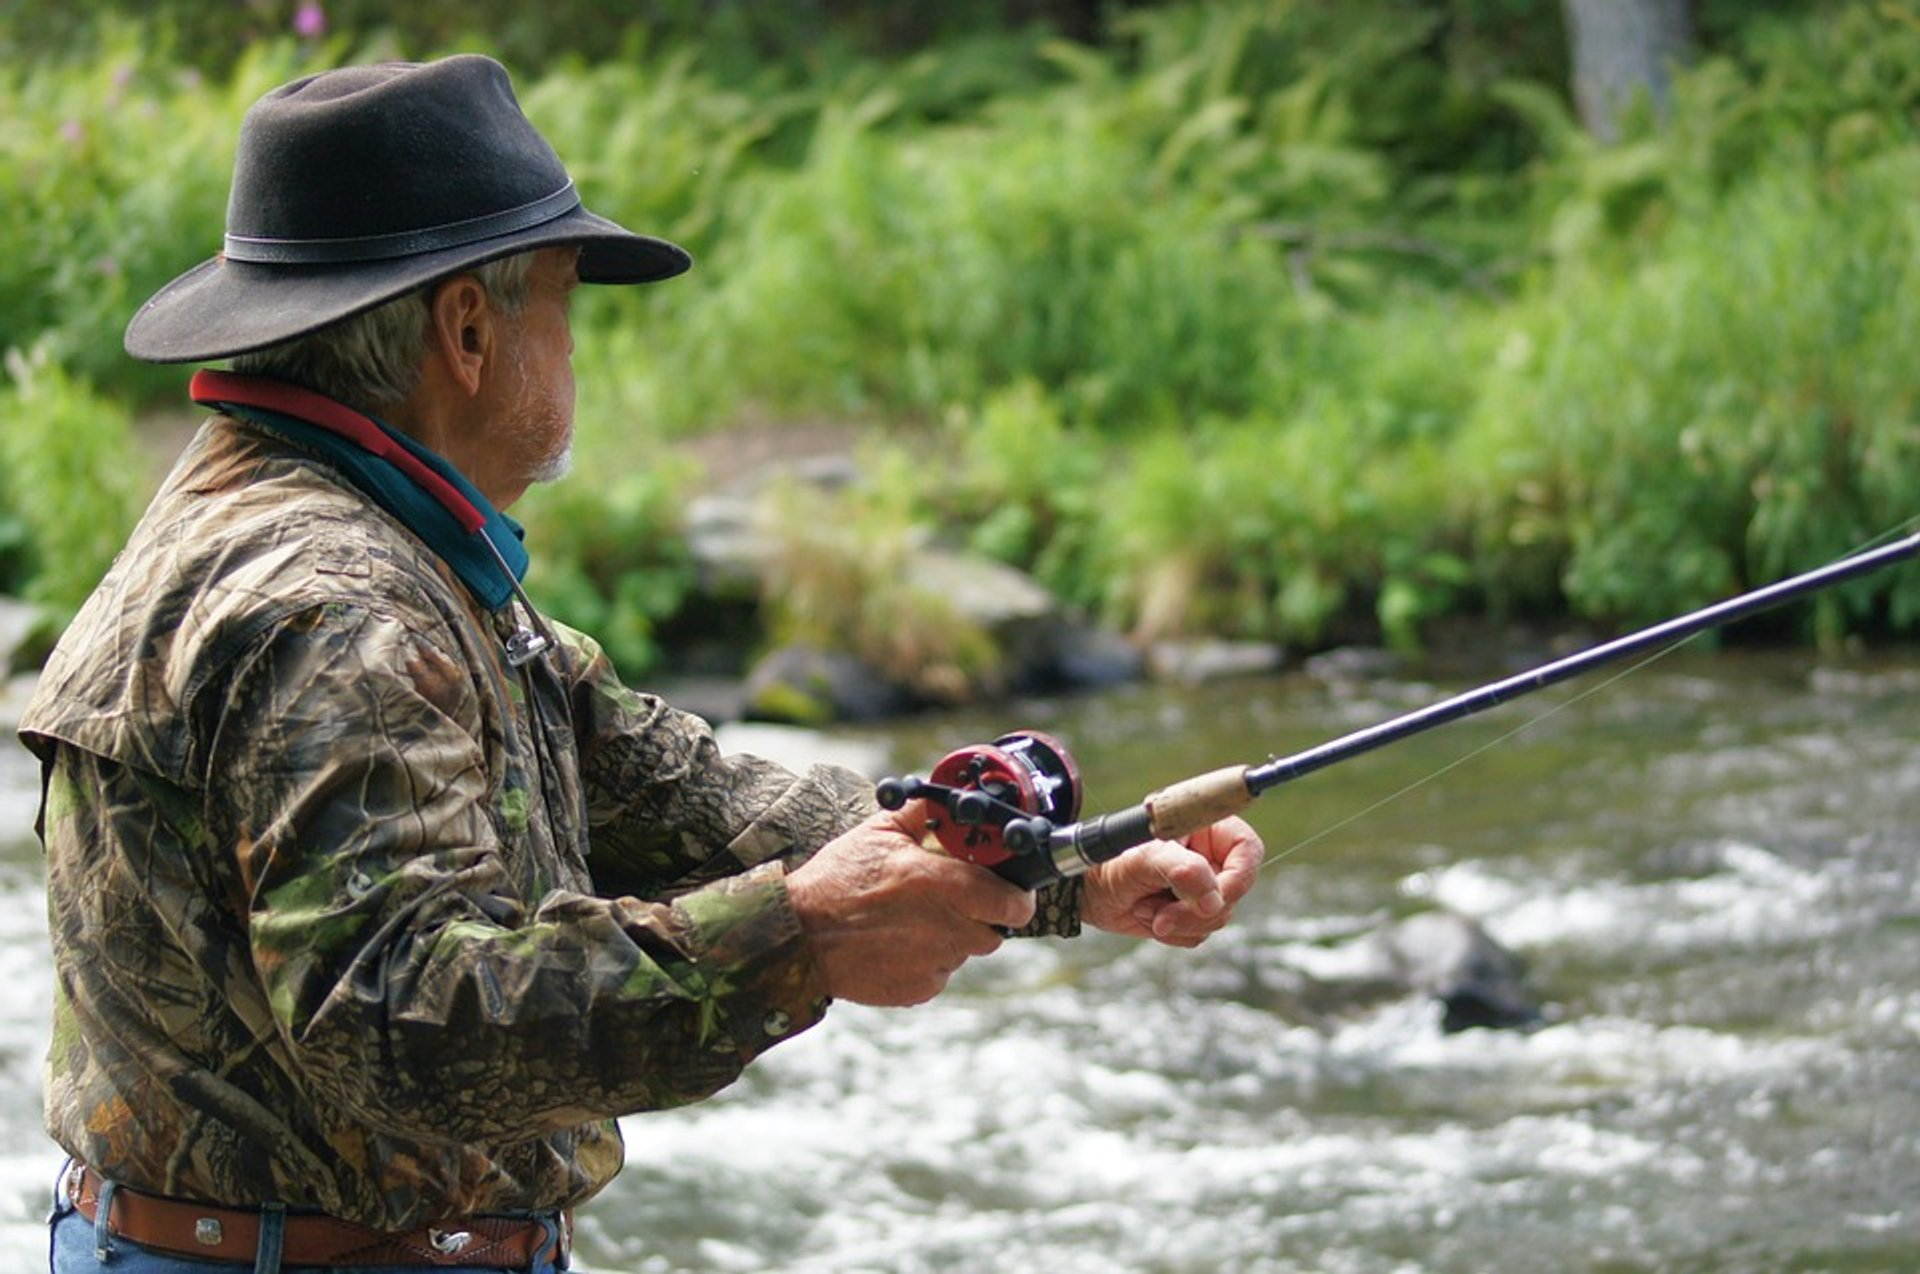 Rainbow Trout Fishing in Alaska 2019 - Best Time